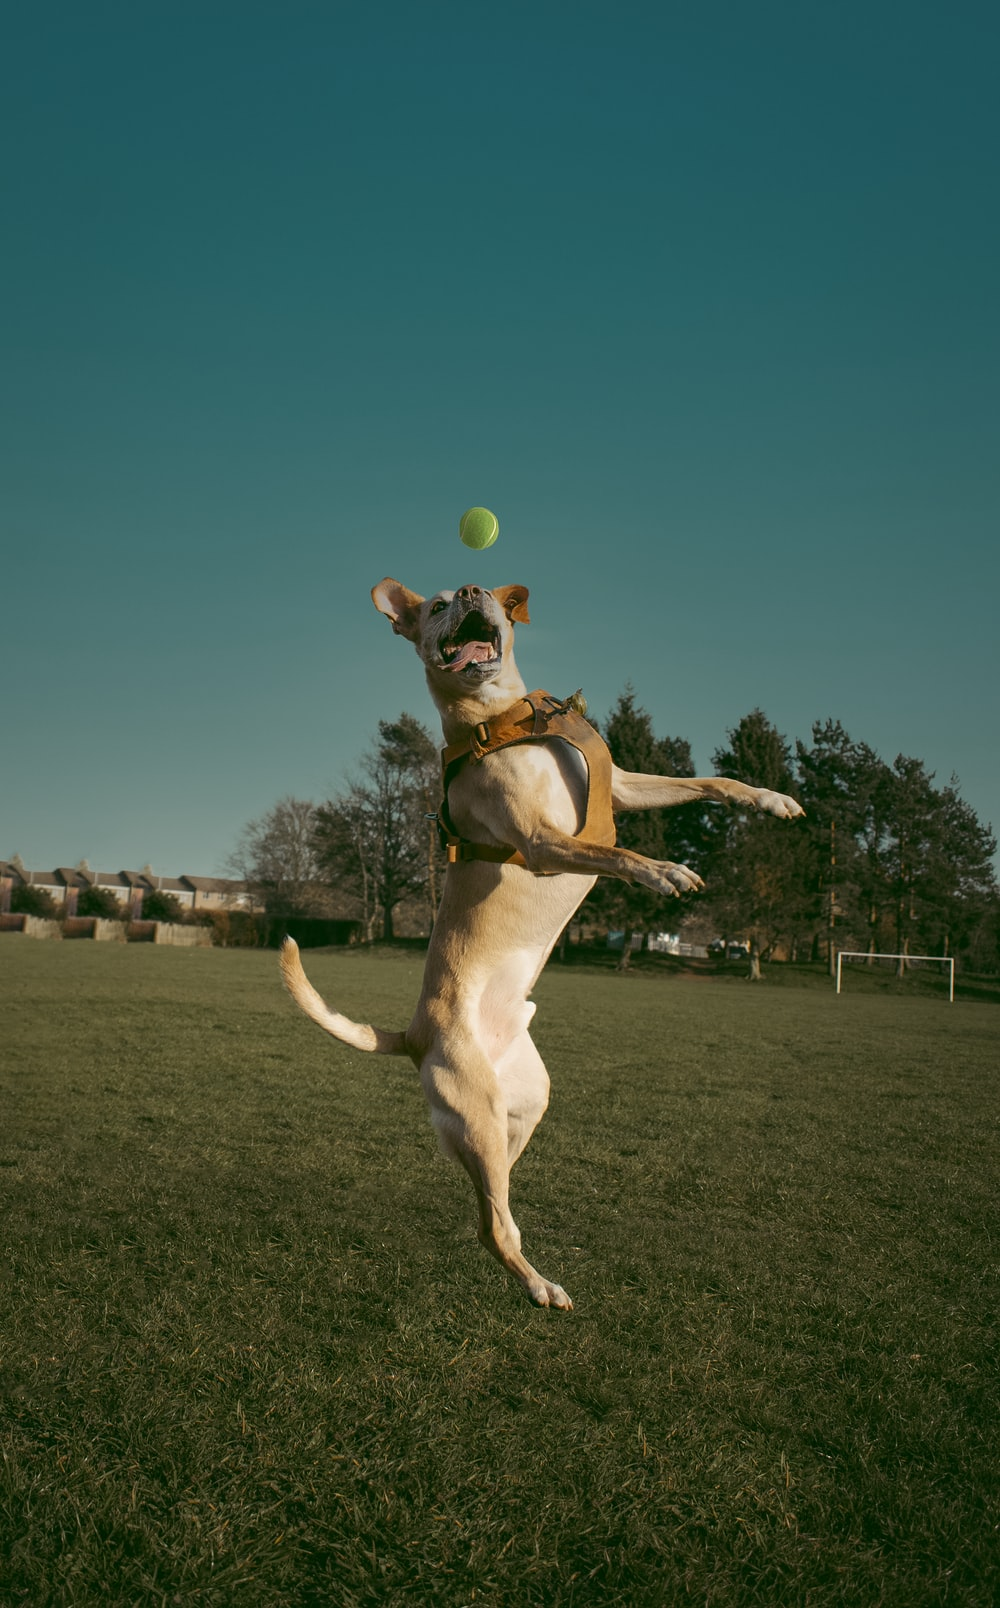 brown and white short coated dog playing tennis during daytime